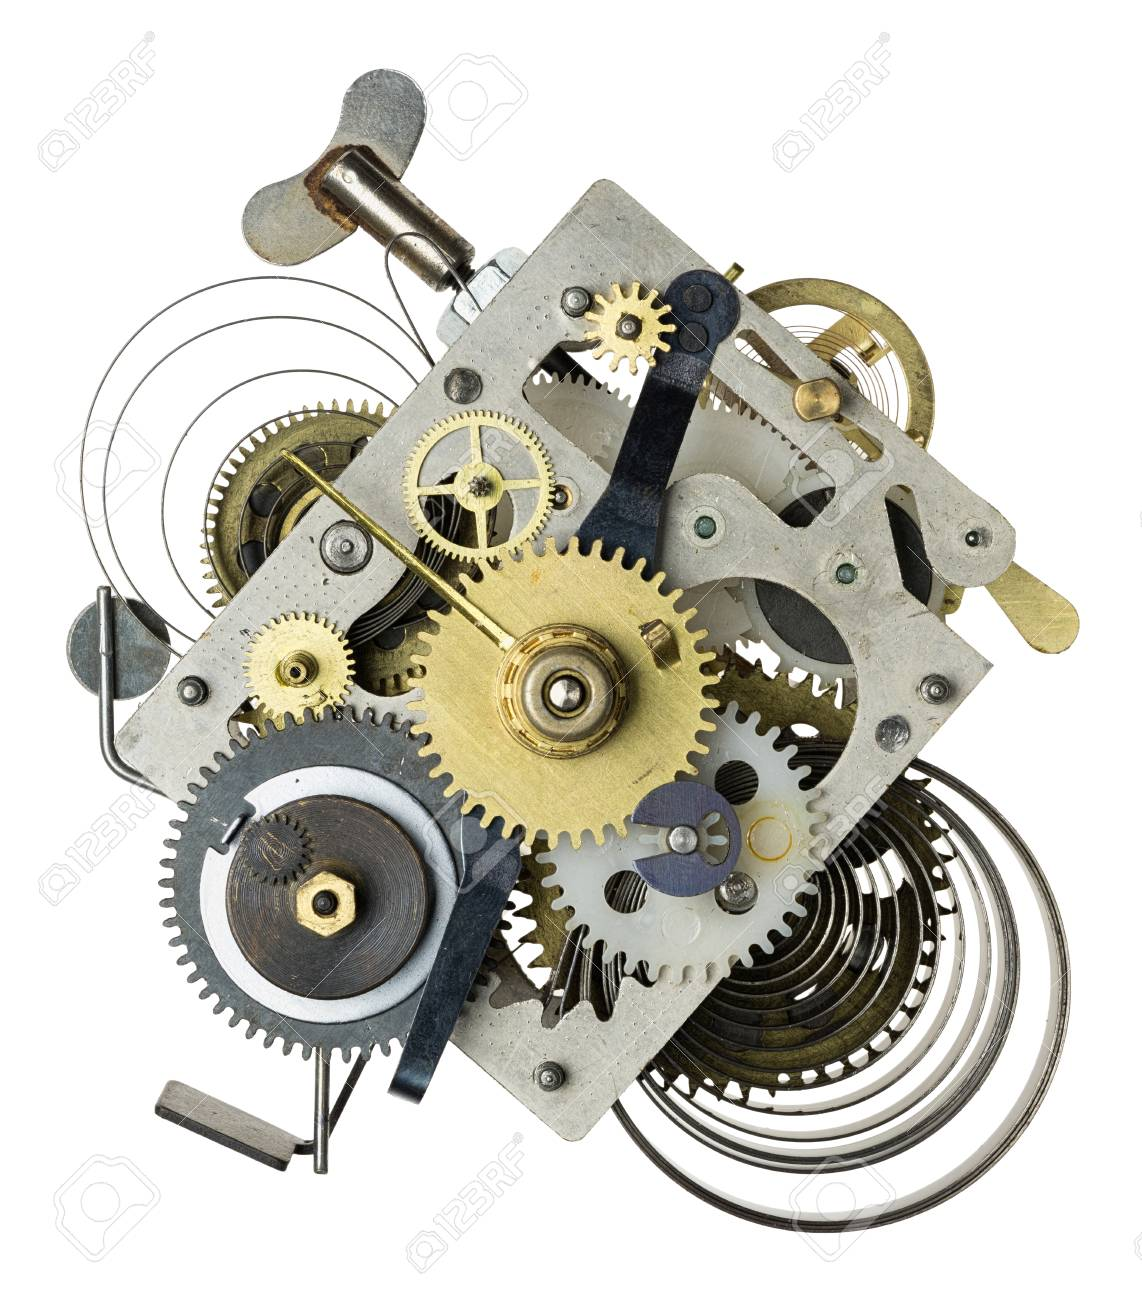 ab0201e208b Stock Photo - Stylized metal collage of clockwork.